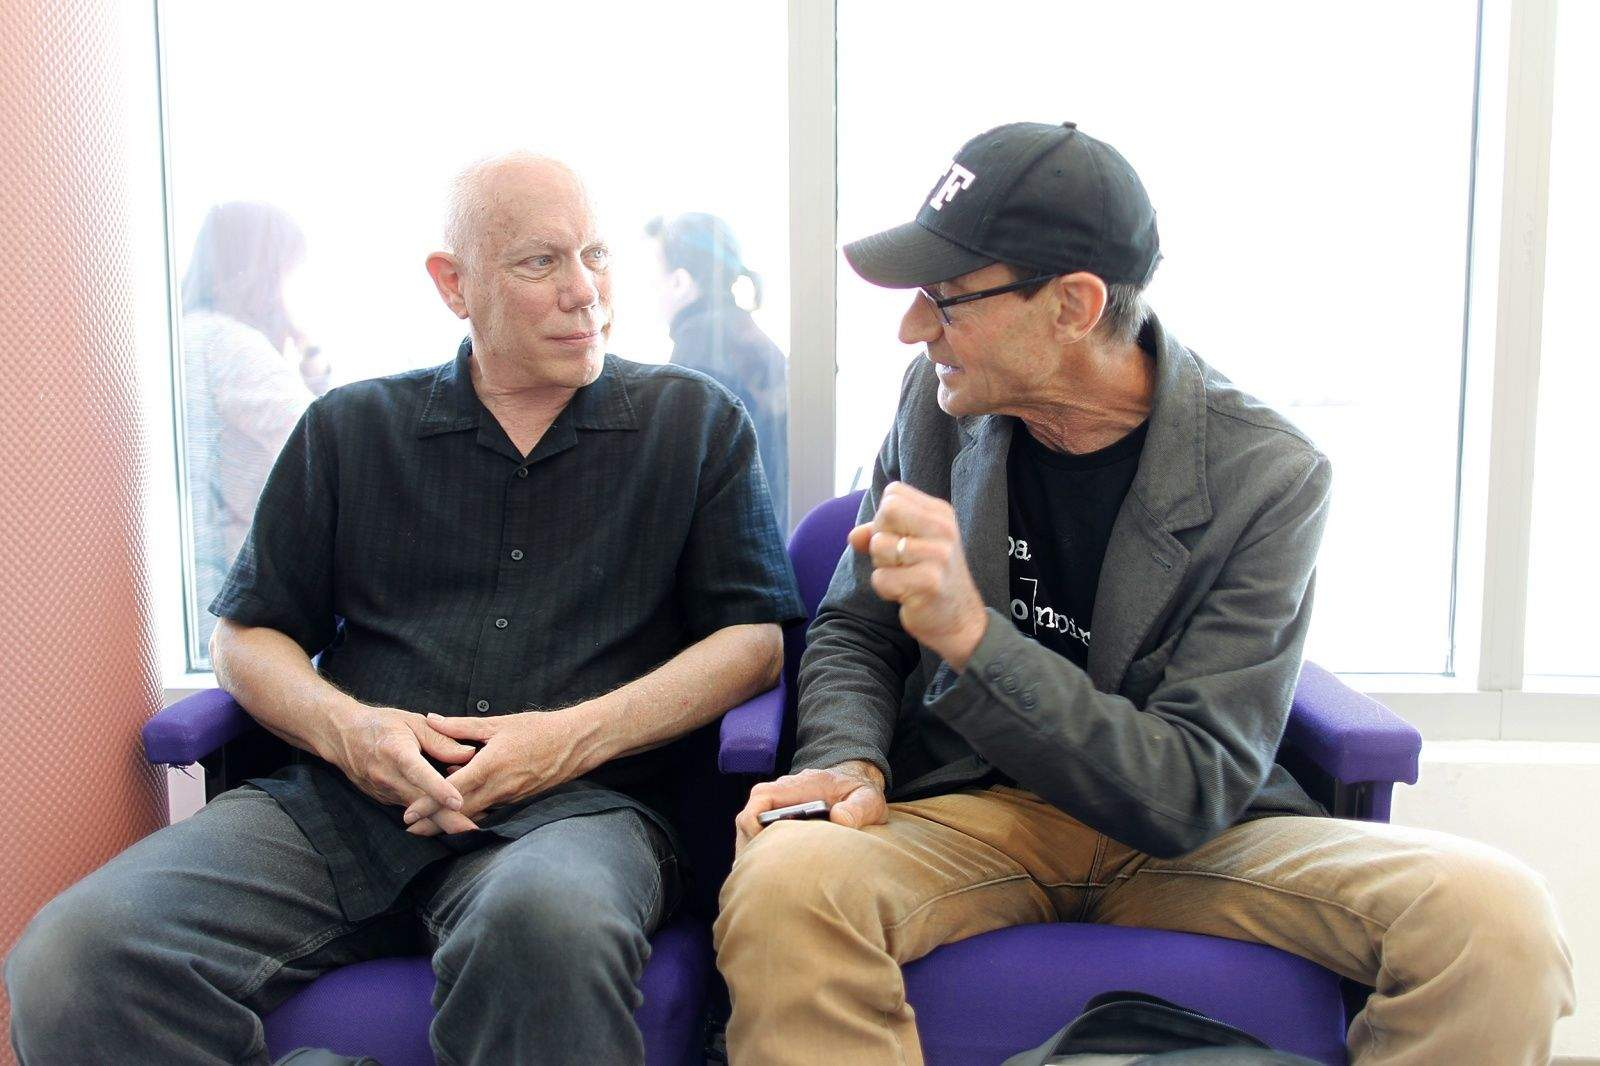 Bill Atkinson, left and Andrew Stone chat each other up at AltConf in San Francisco June 3, 2014. Photo: Jim Merithew/Cult of Mac